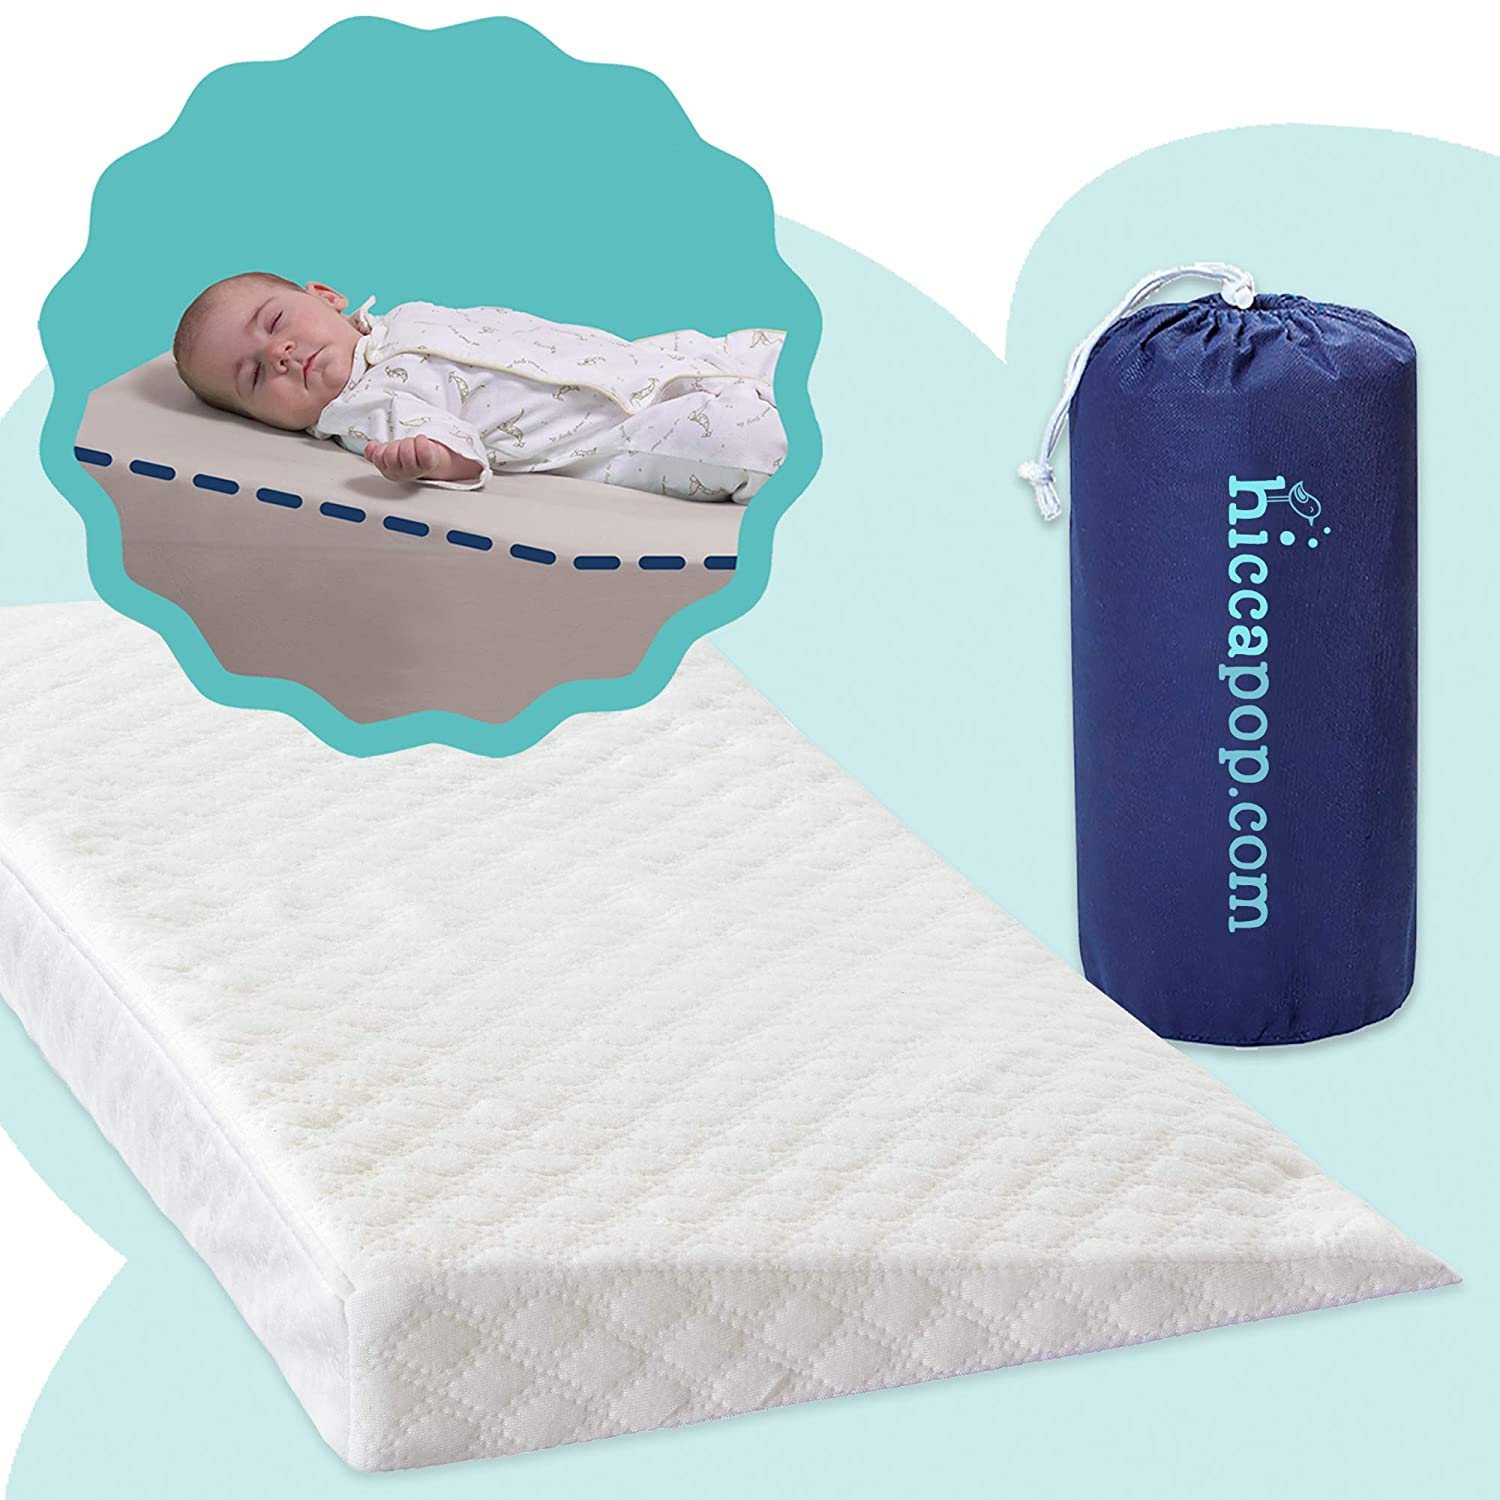 Hiccapop Crib Wedge with Deluxe Soft Plush Cover